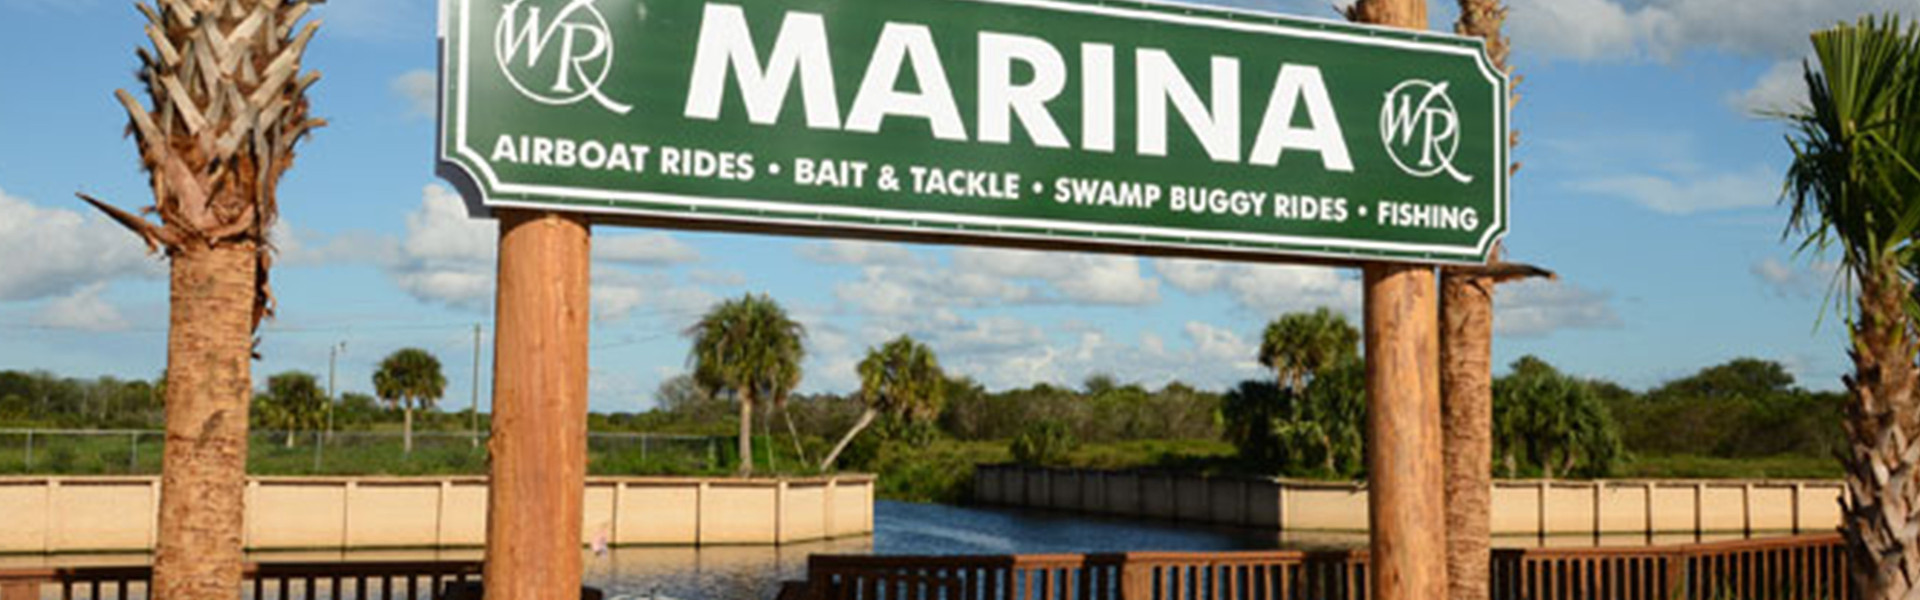 Find your adventure with Airboat Rides, Rodeos, Horseback Rides, Archery, and More! | Westgate River Ranch Resort & Rodeo